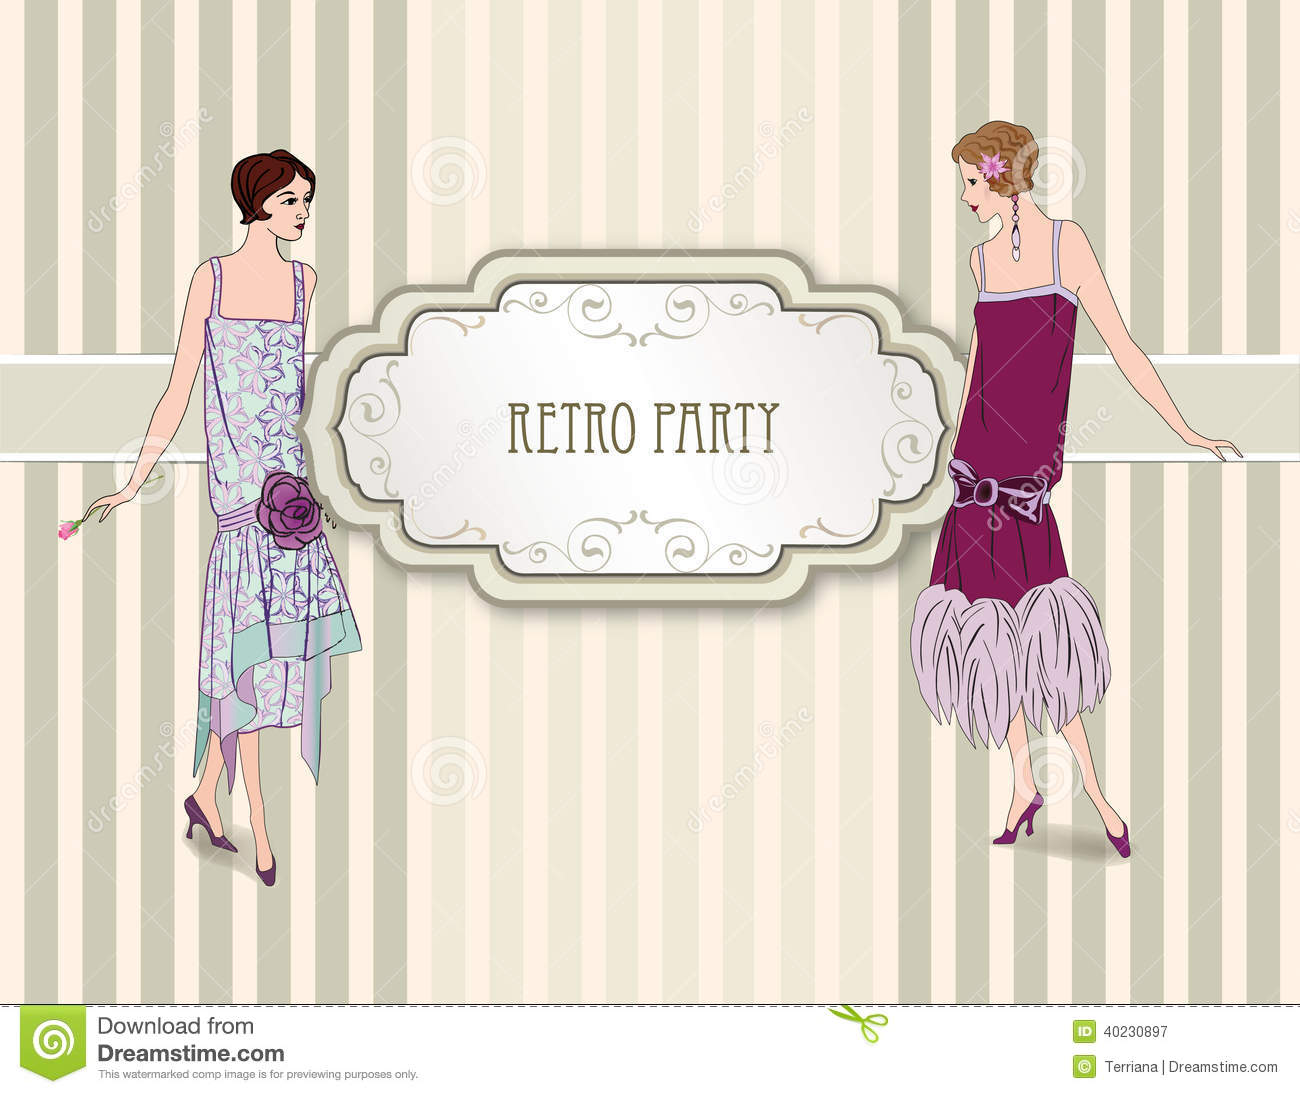 Retro Fashion Background Woman On Party 1930s Style Stock Vector Image 40230897